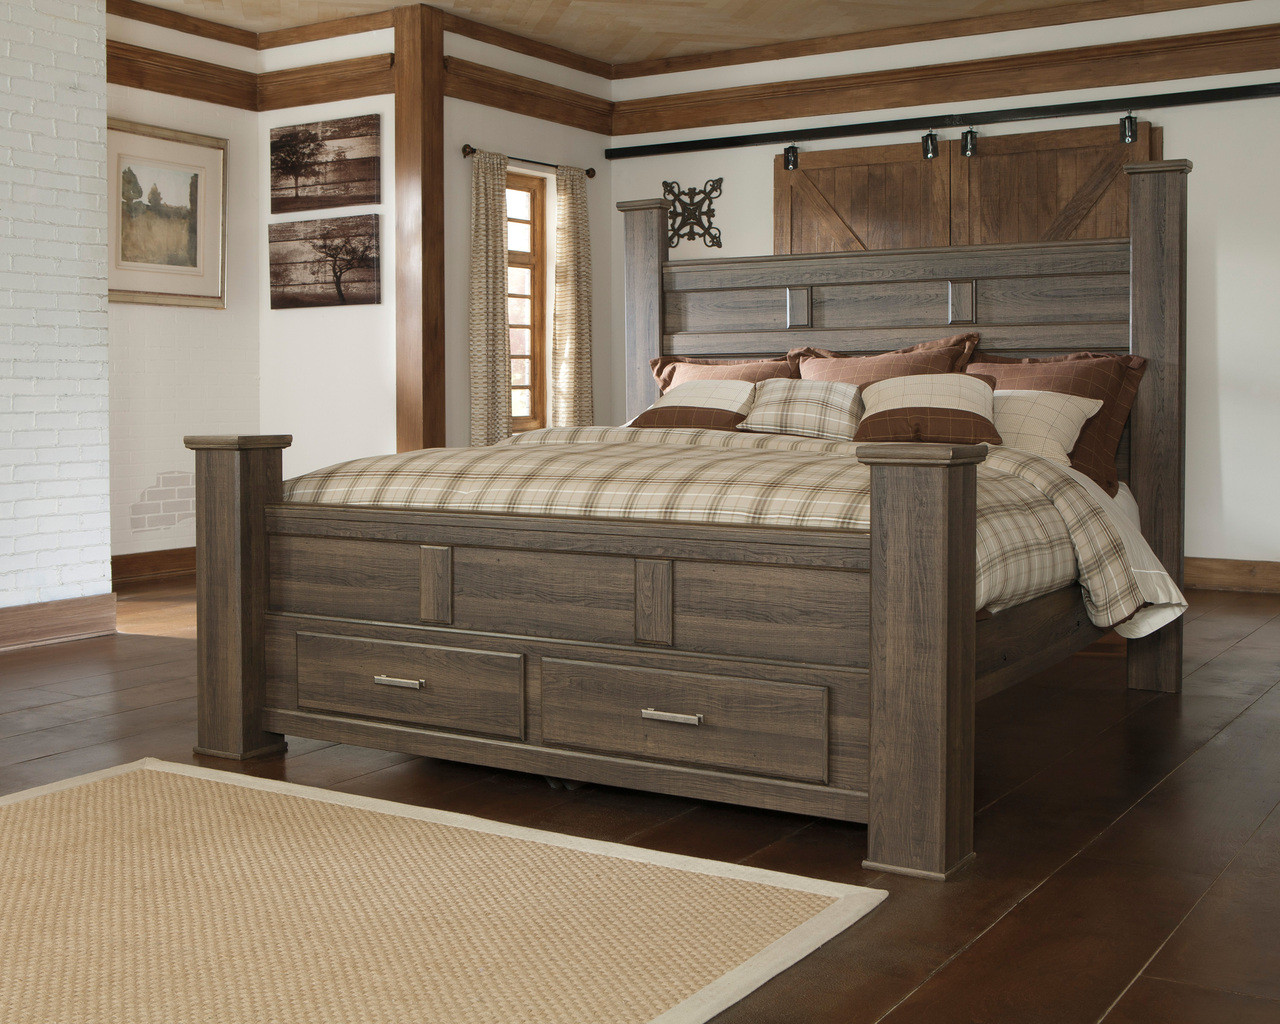 Hacienda Aged Poster Bedroom Set With Storage Drawers Cb Furniture